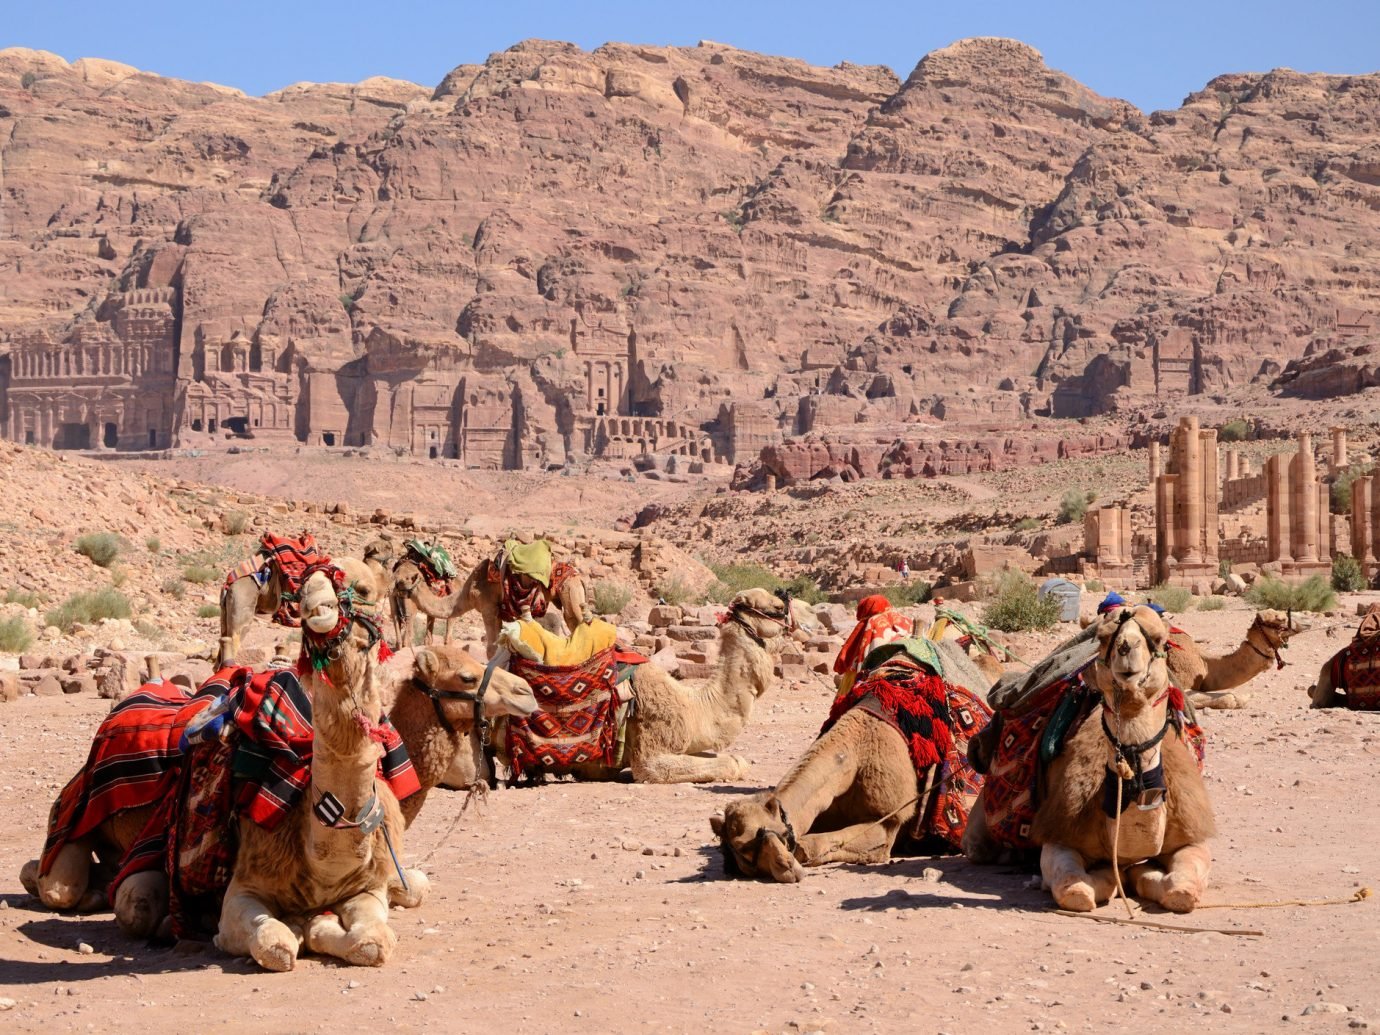 Arts + Culture Landmarks Trip Ideas mountain ground outdoor Camel sky mountainous landforms arabian camel camel like mammal wilderness valley wadi pack animal sand rock canyon tourism livestock landscape geology ecoregion travel badlands aeolian landform Desert vacation plateau Adventure